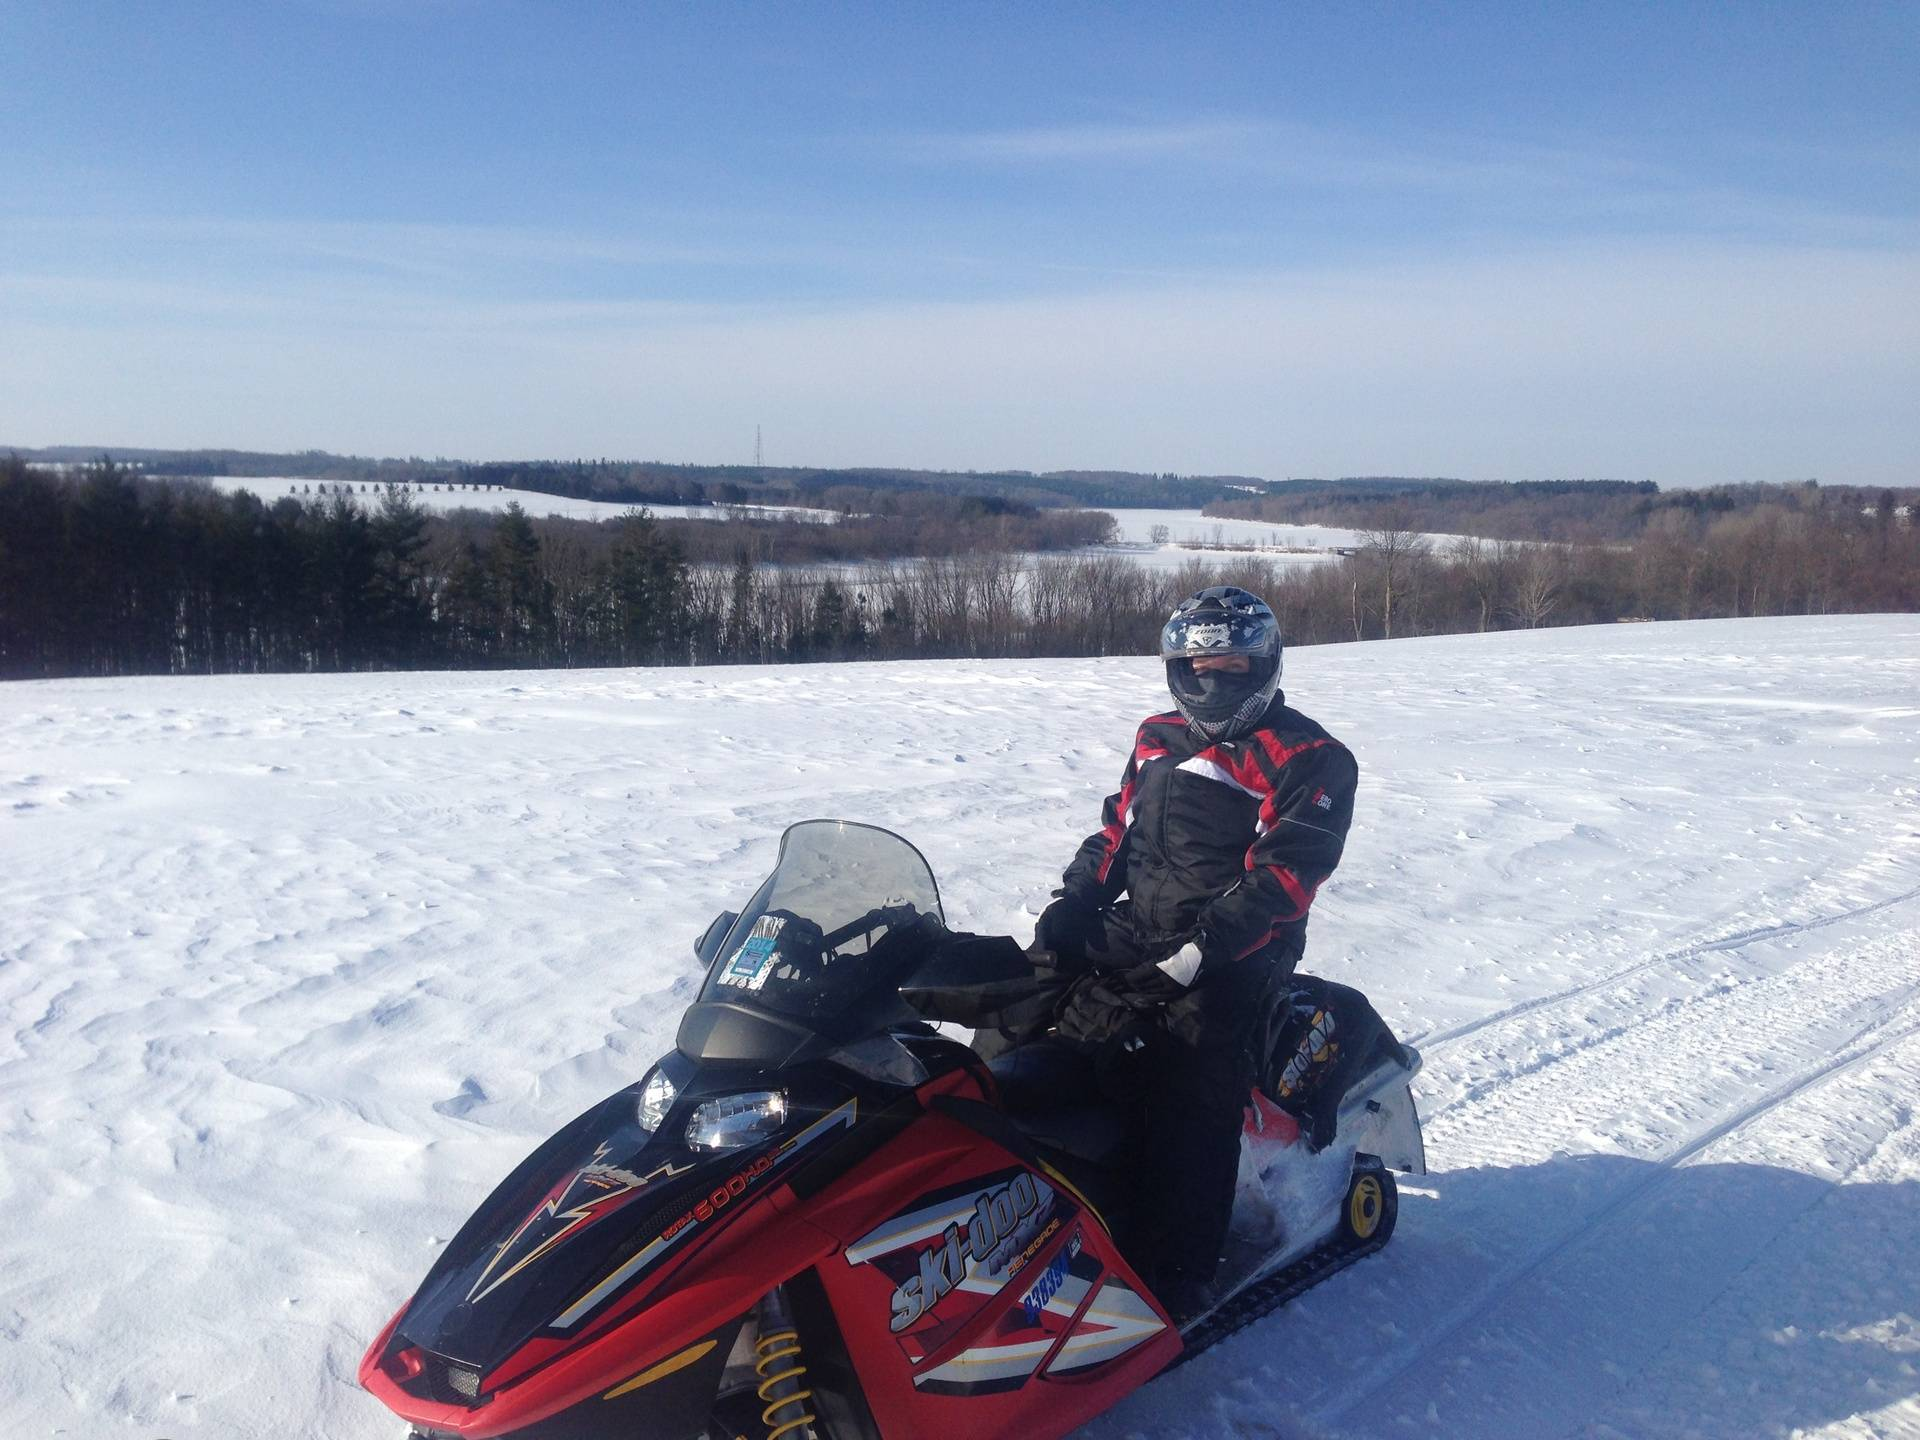 How to join the Thamesford Snowmobile Club?